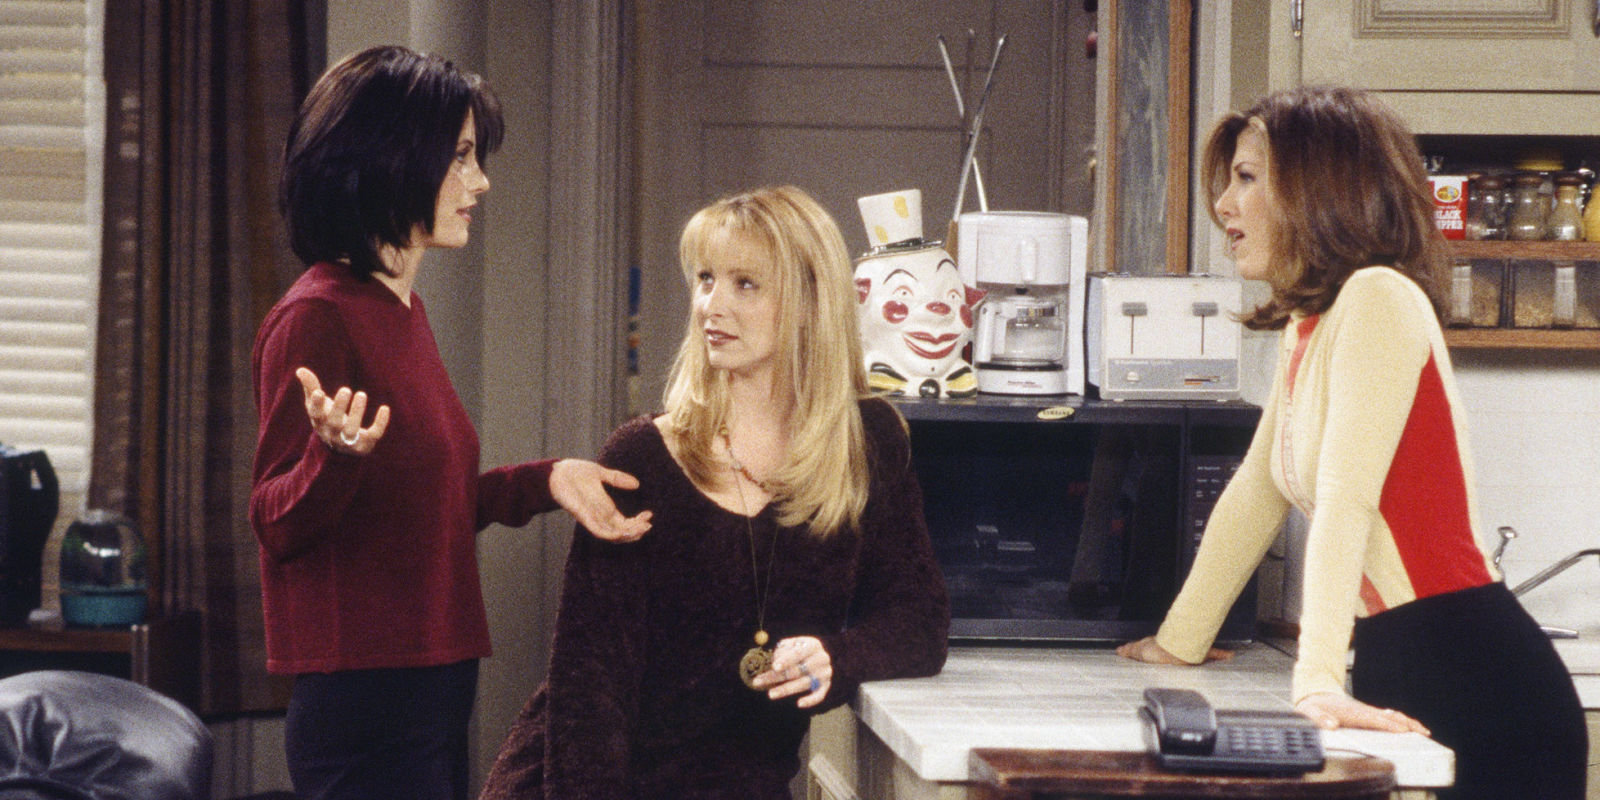 Another Insane Thing You Never Noticed About Friends